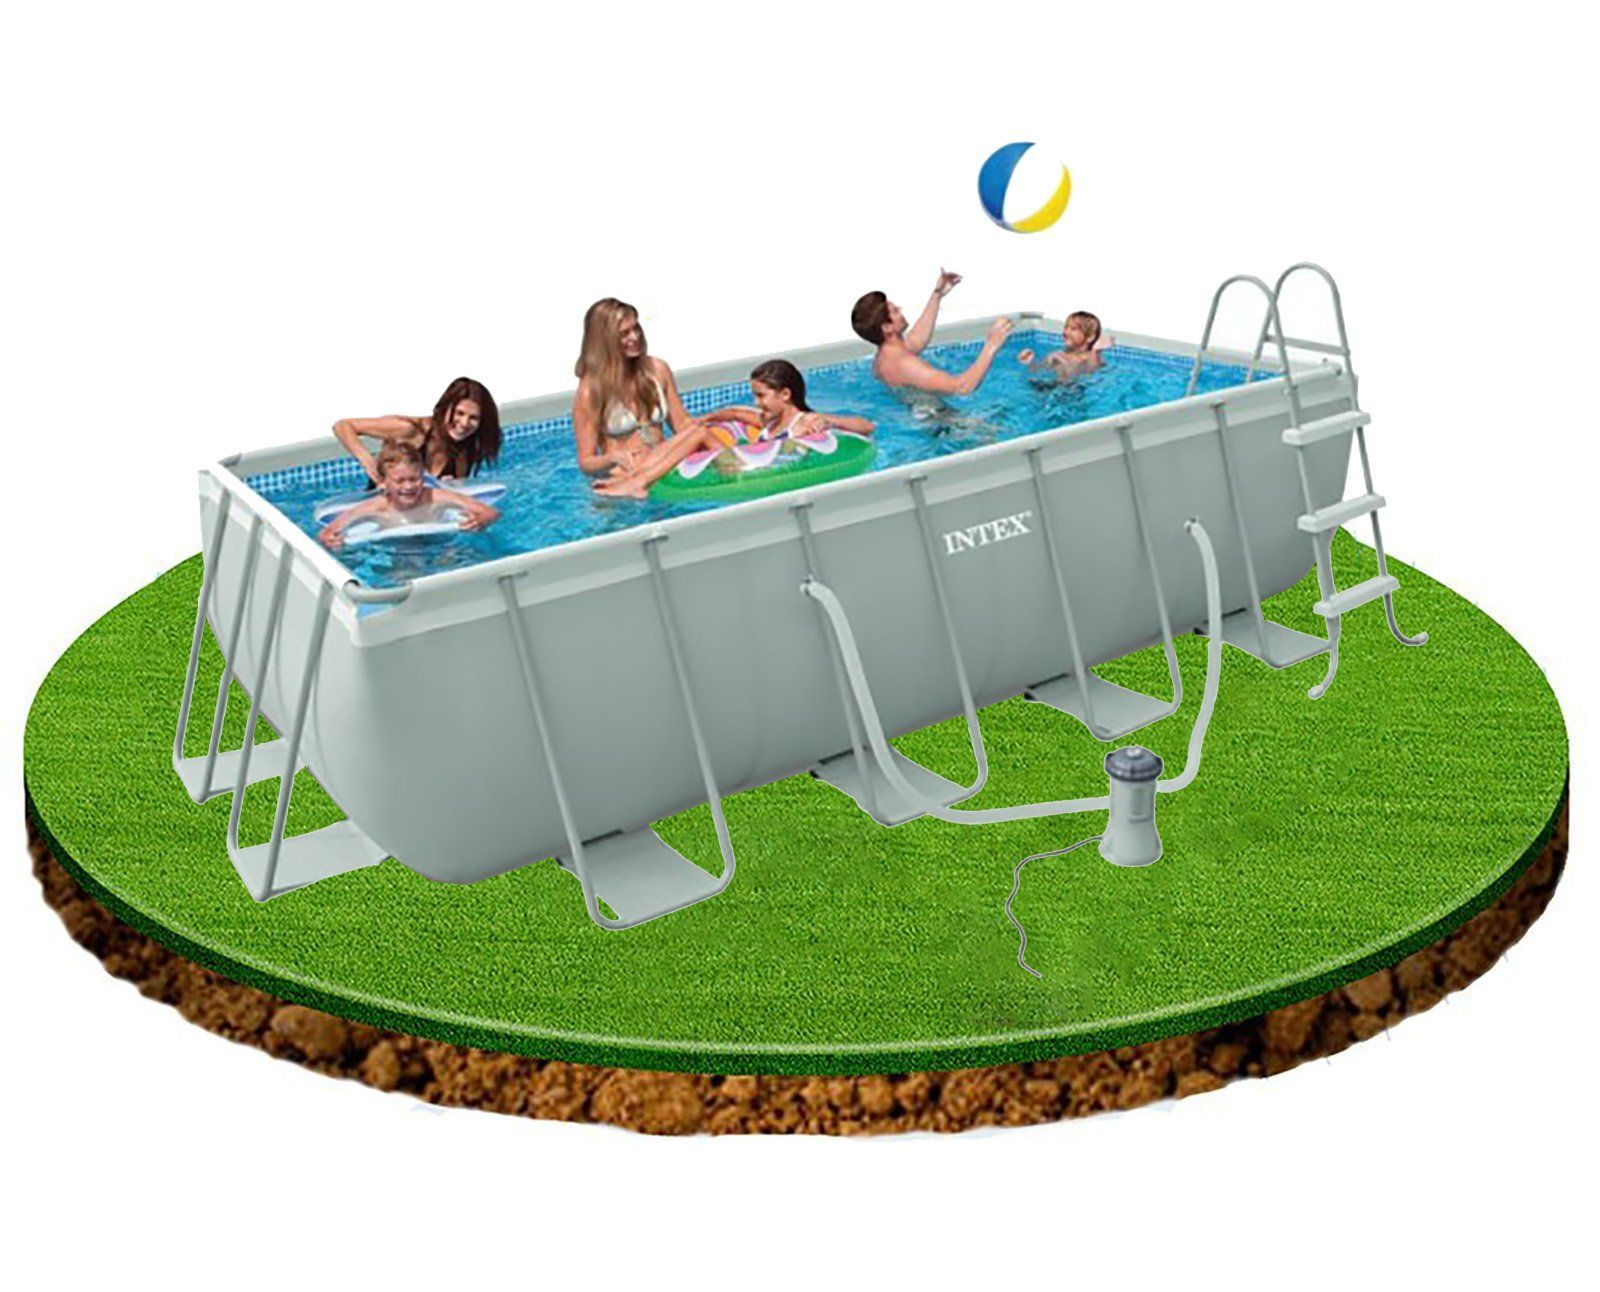 Intex 4m x 2m x 1m deep Rectangular Ultra Frame Swimming Pool with ...